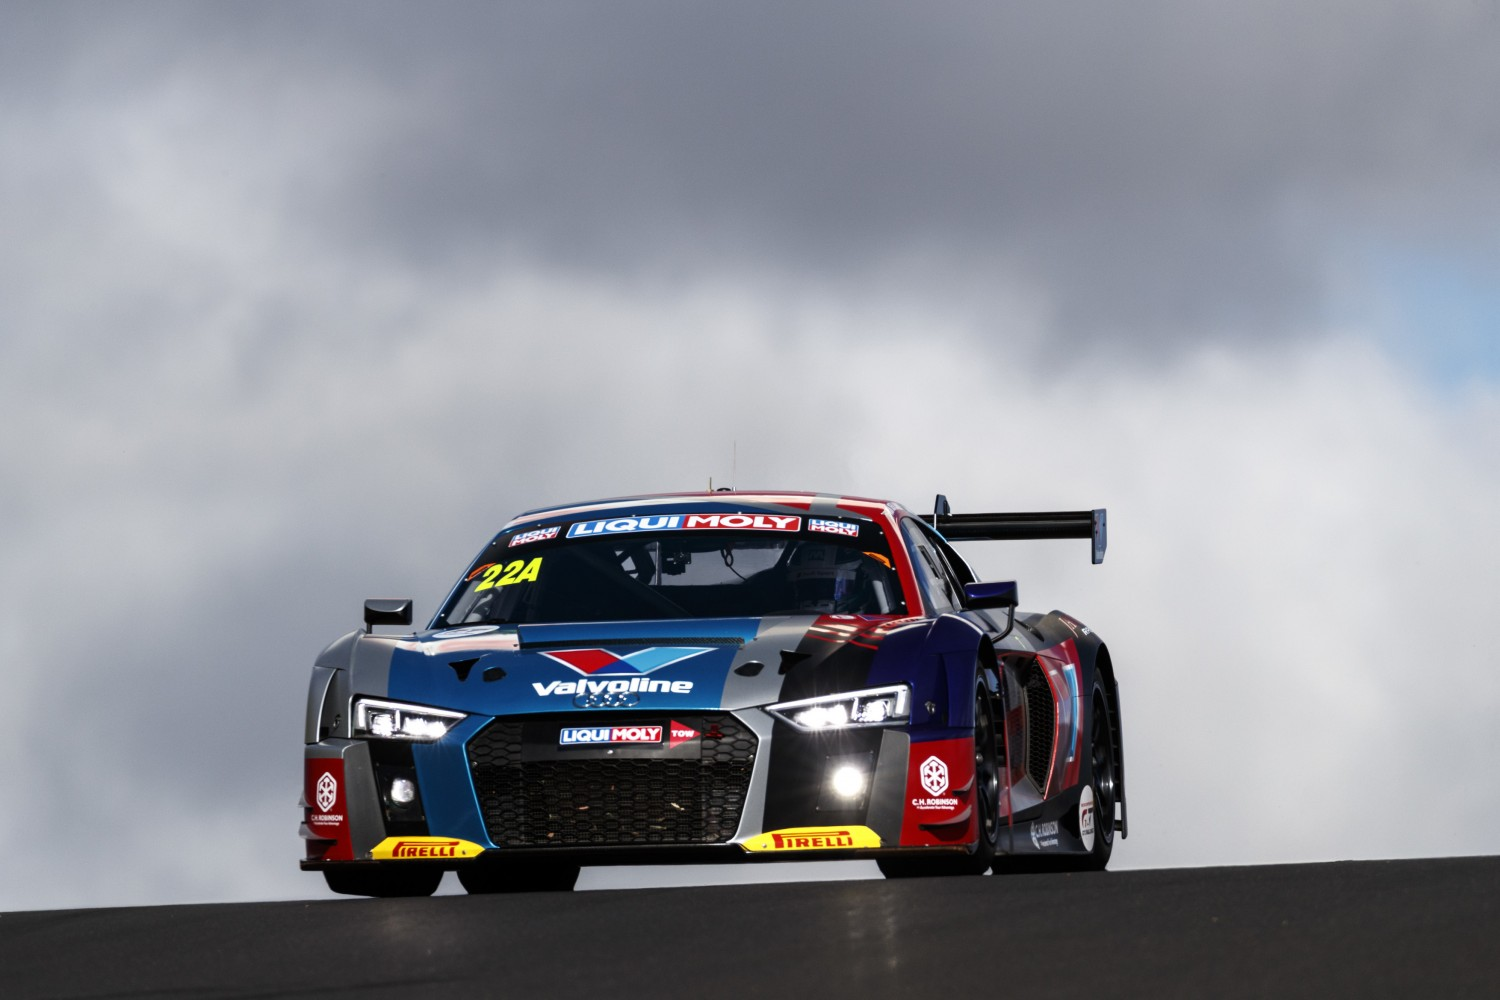 BMW takes pole, Audi first Intercontinental GT Challenge manufacturer on Bathurst grid